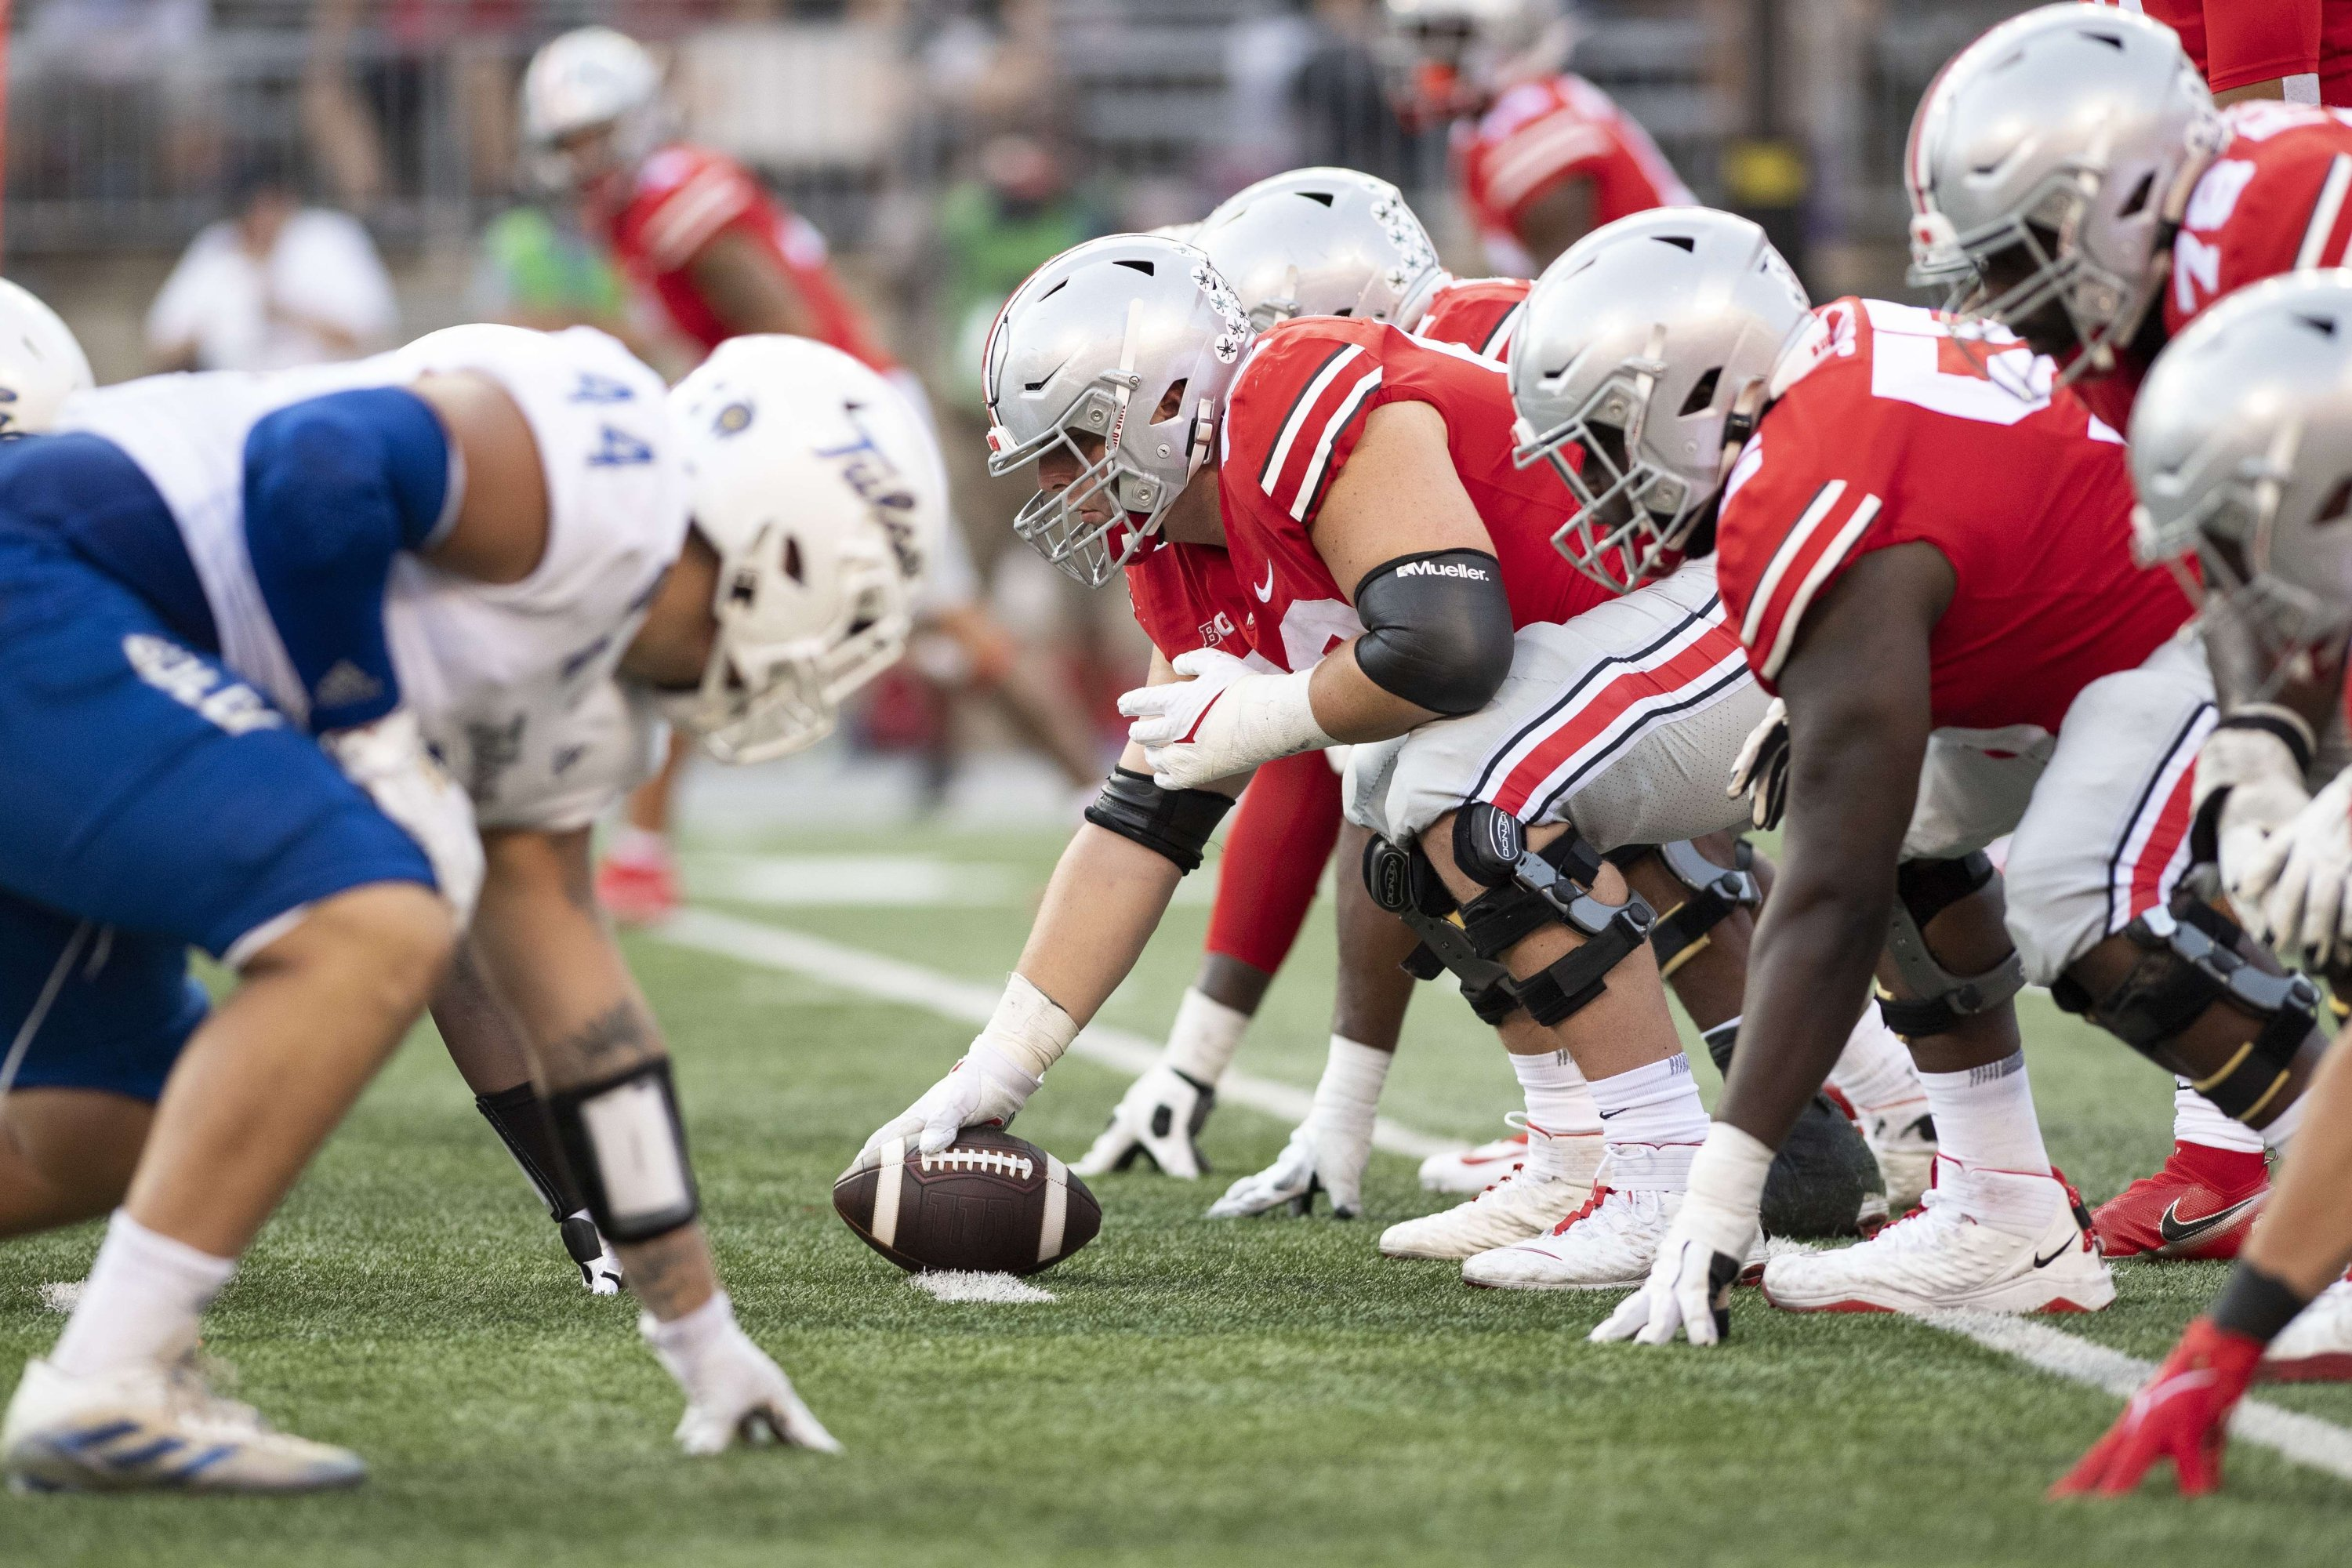 The Ohio State Buckeyes hike the ball at the line of scrimmage against the Tulsa Golden Hurricane during the third quarter at Ohio Stadium, Columbus, Ohio, U.S., Sept. 18, 2021. (AFP Photo)